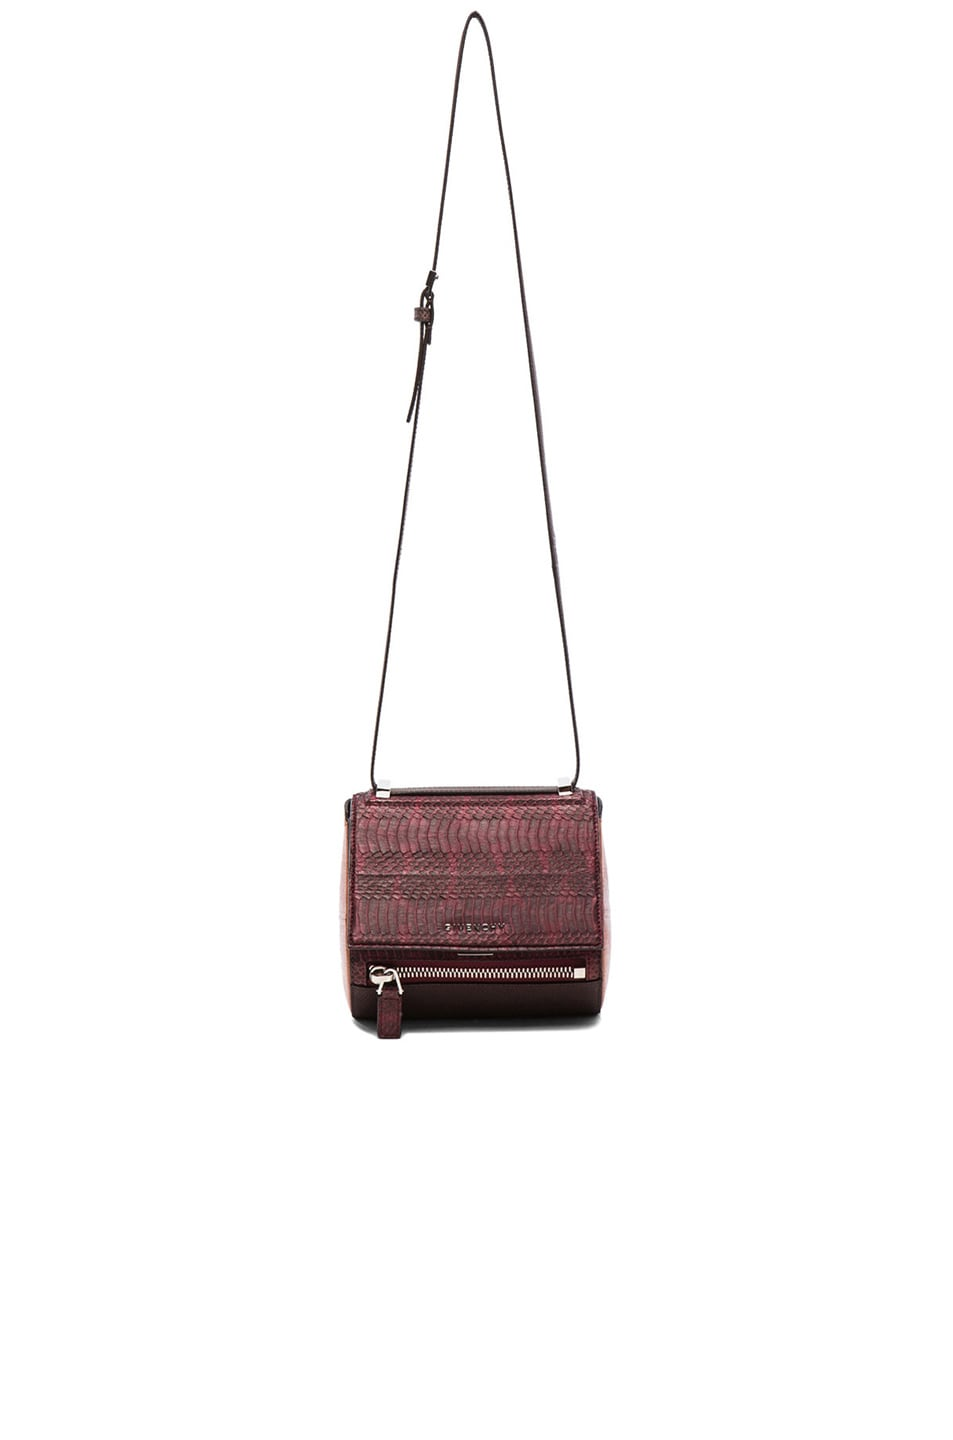 Image 1 of Givenchy Mini Pandora Box in Oxblood a0df72fe021a7